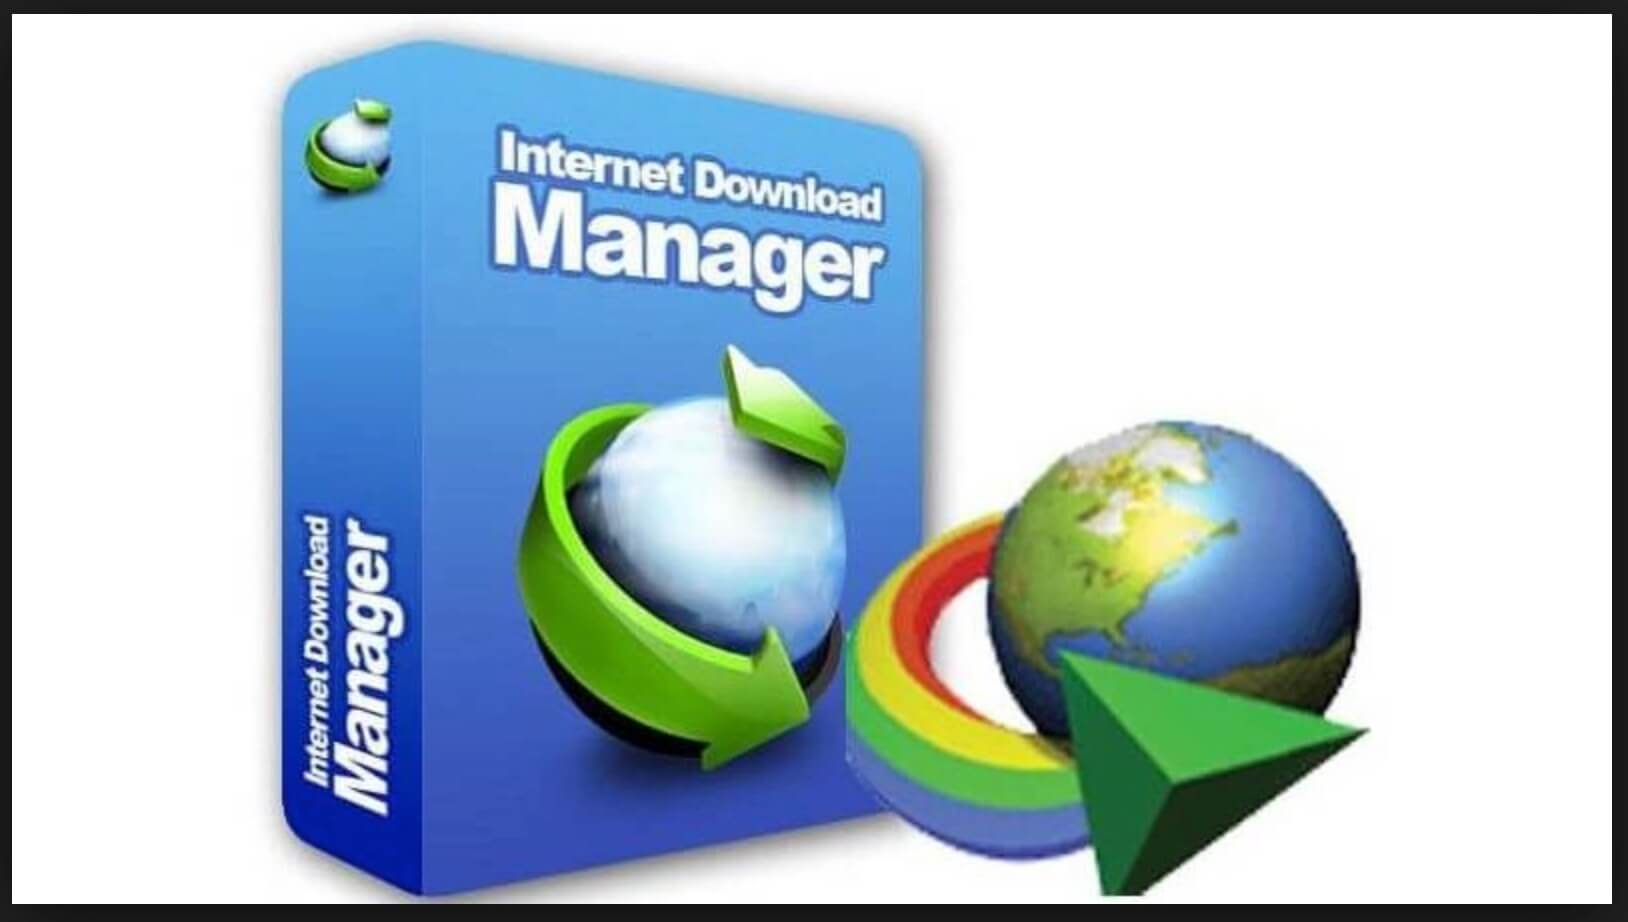 IDM Crack with Internet Download Manager 6.38 Build 16 [Latest]